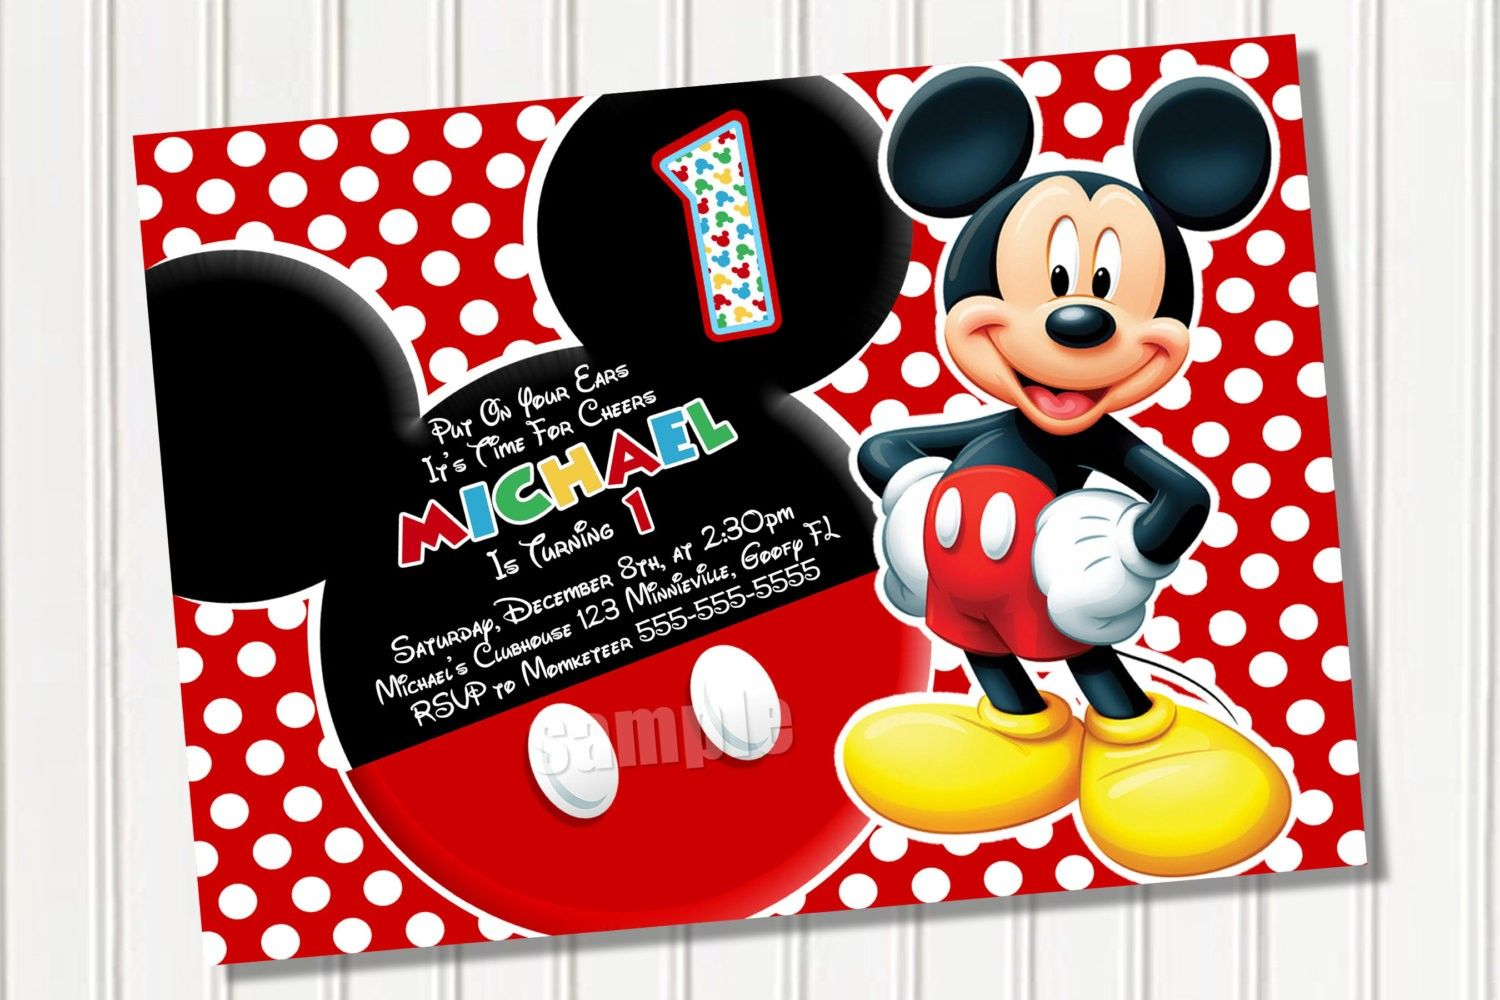 17 best images about mickey party mickey mouse 17 best images about mickey party mickey mouse birthday invitations mickey mouse 1st birthday and mickey mouse clubhouse invitations